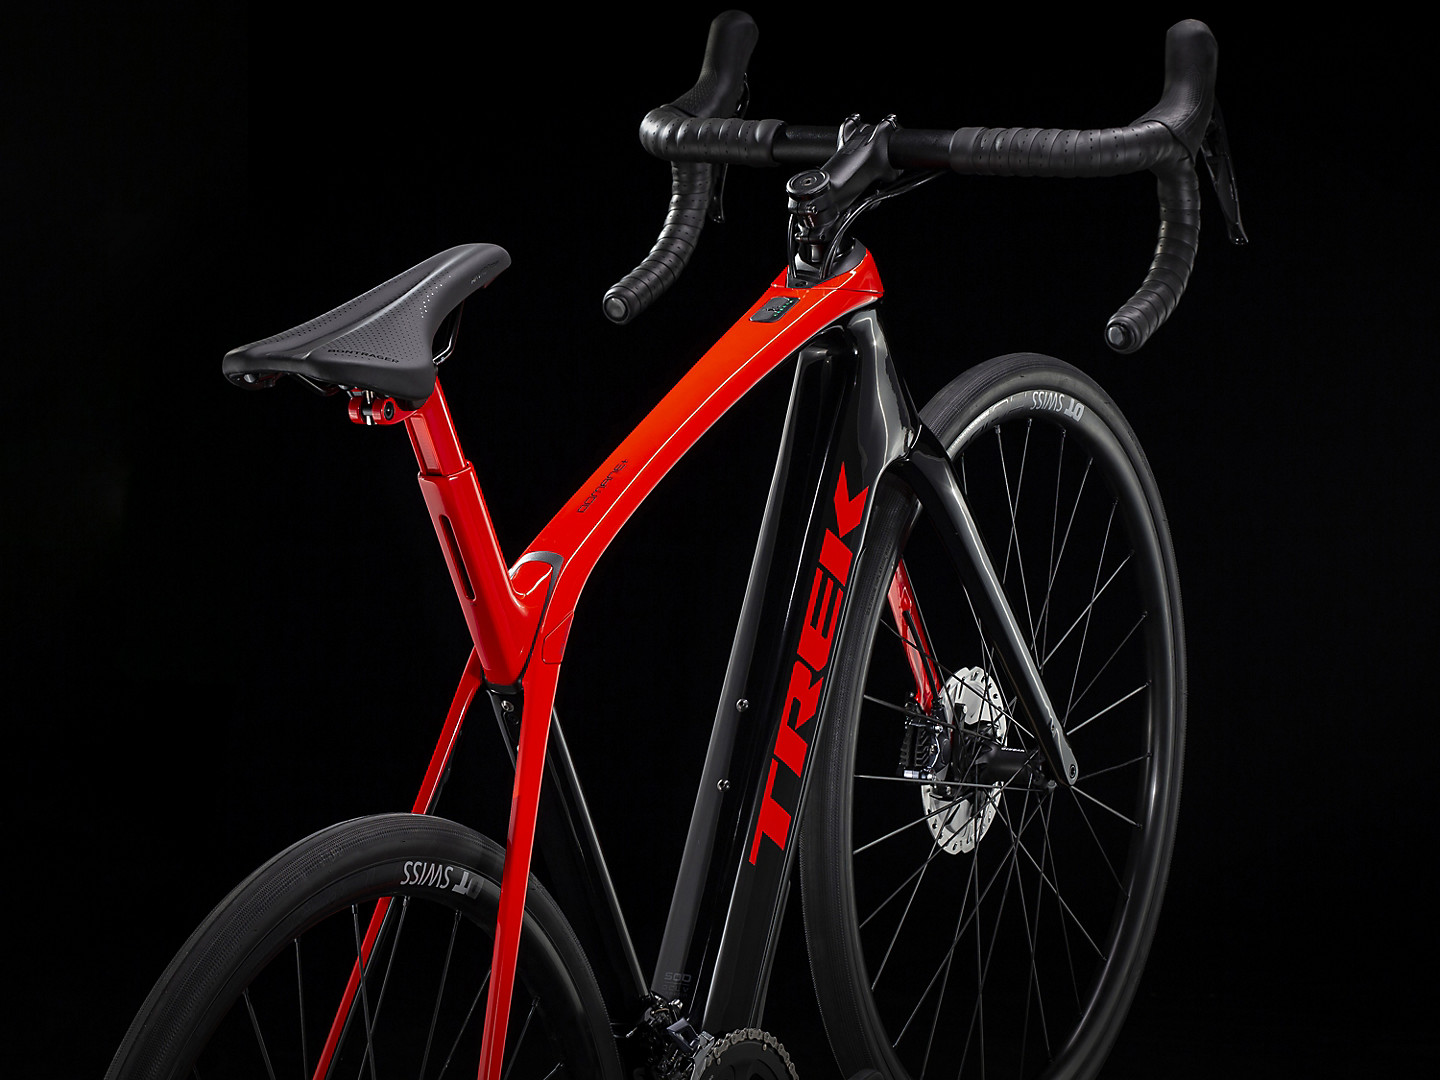 Domane bicycle in the black background